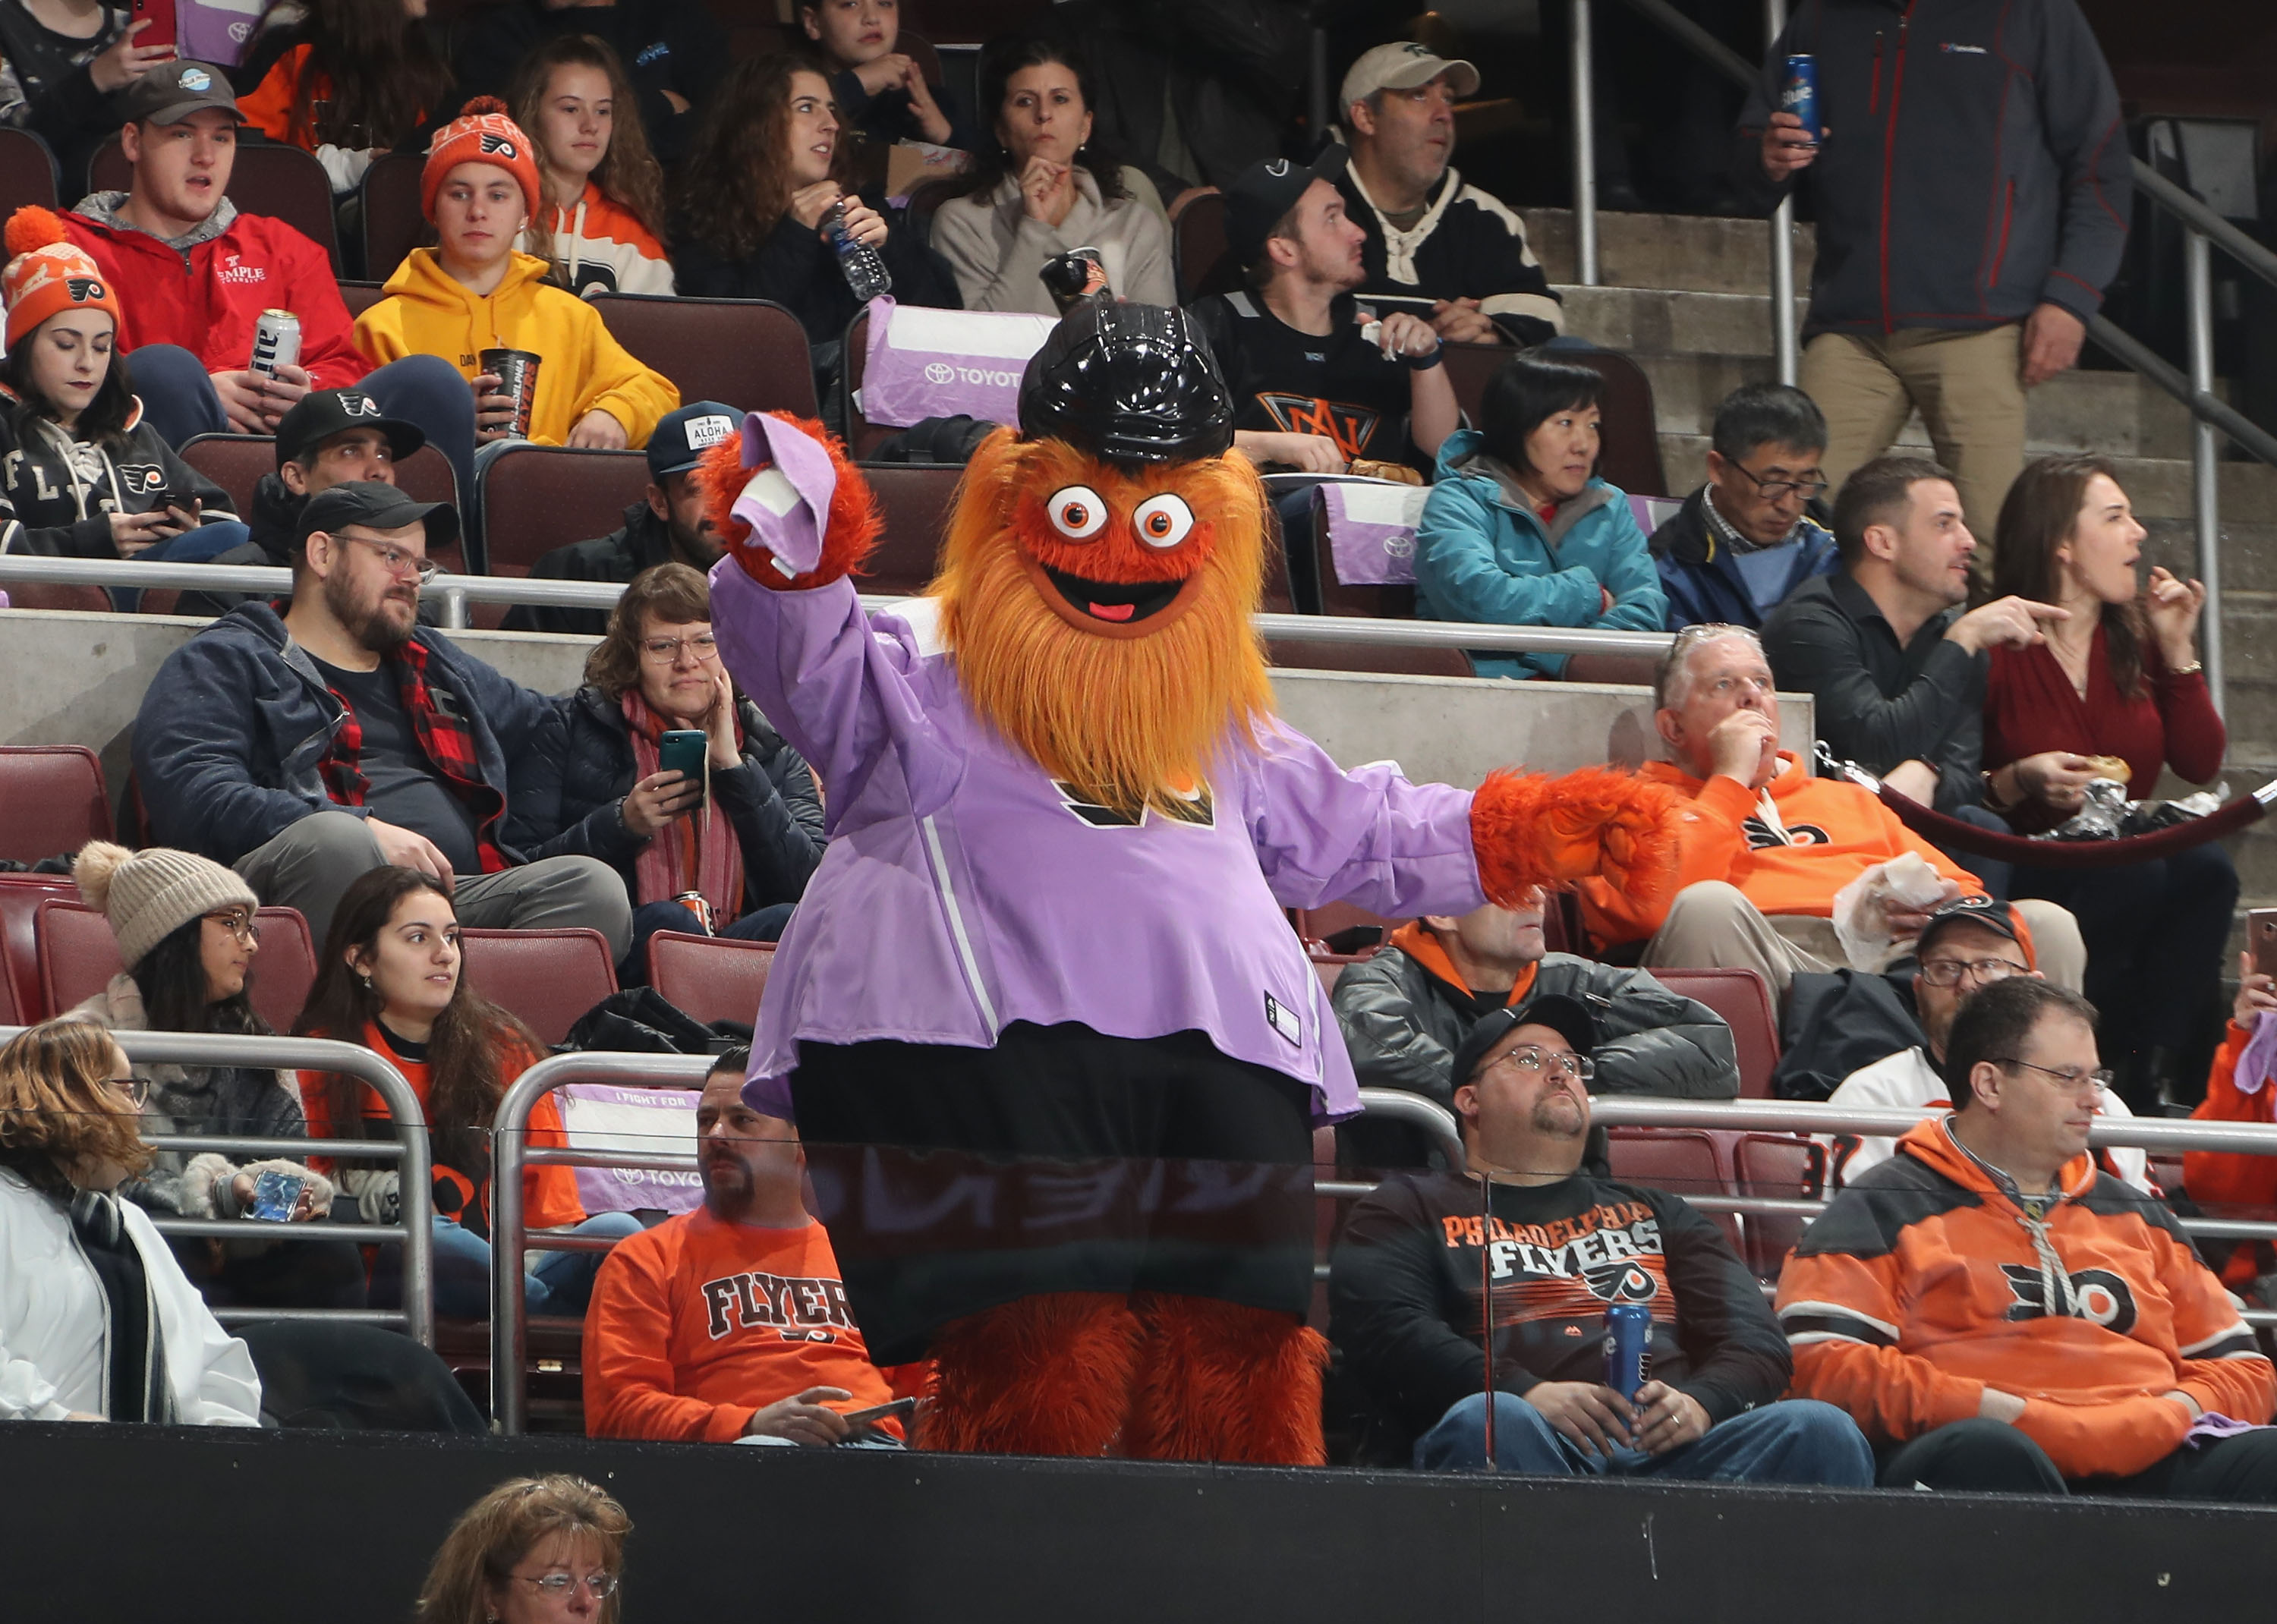 The Philadelphia Flyers mascot Gritty entertains fans during the game against the Ottawa Senators at the Wells Fargo Center on November 27, 2018 in Philadelphia, Pennsylvania. (Photo by Bruce Bennett/Getty Images)